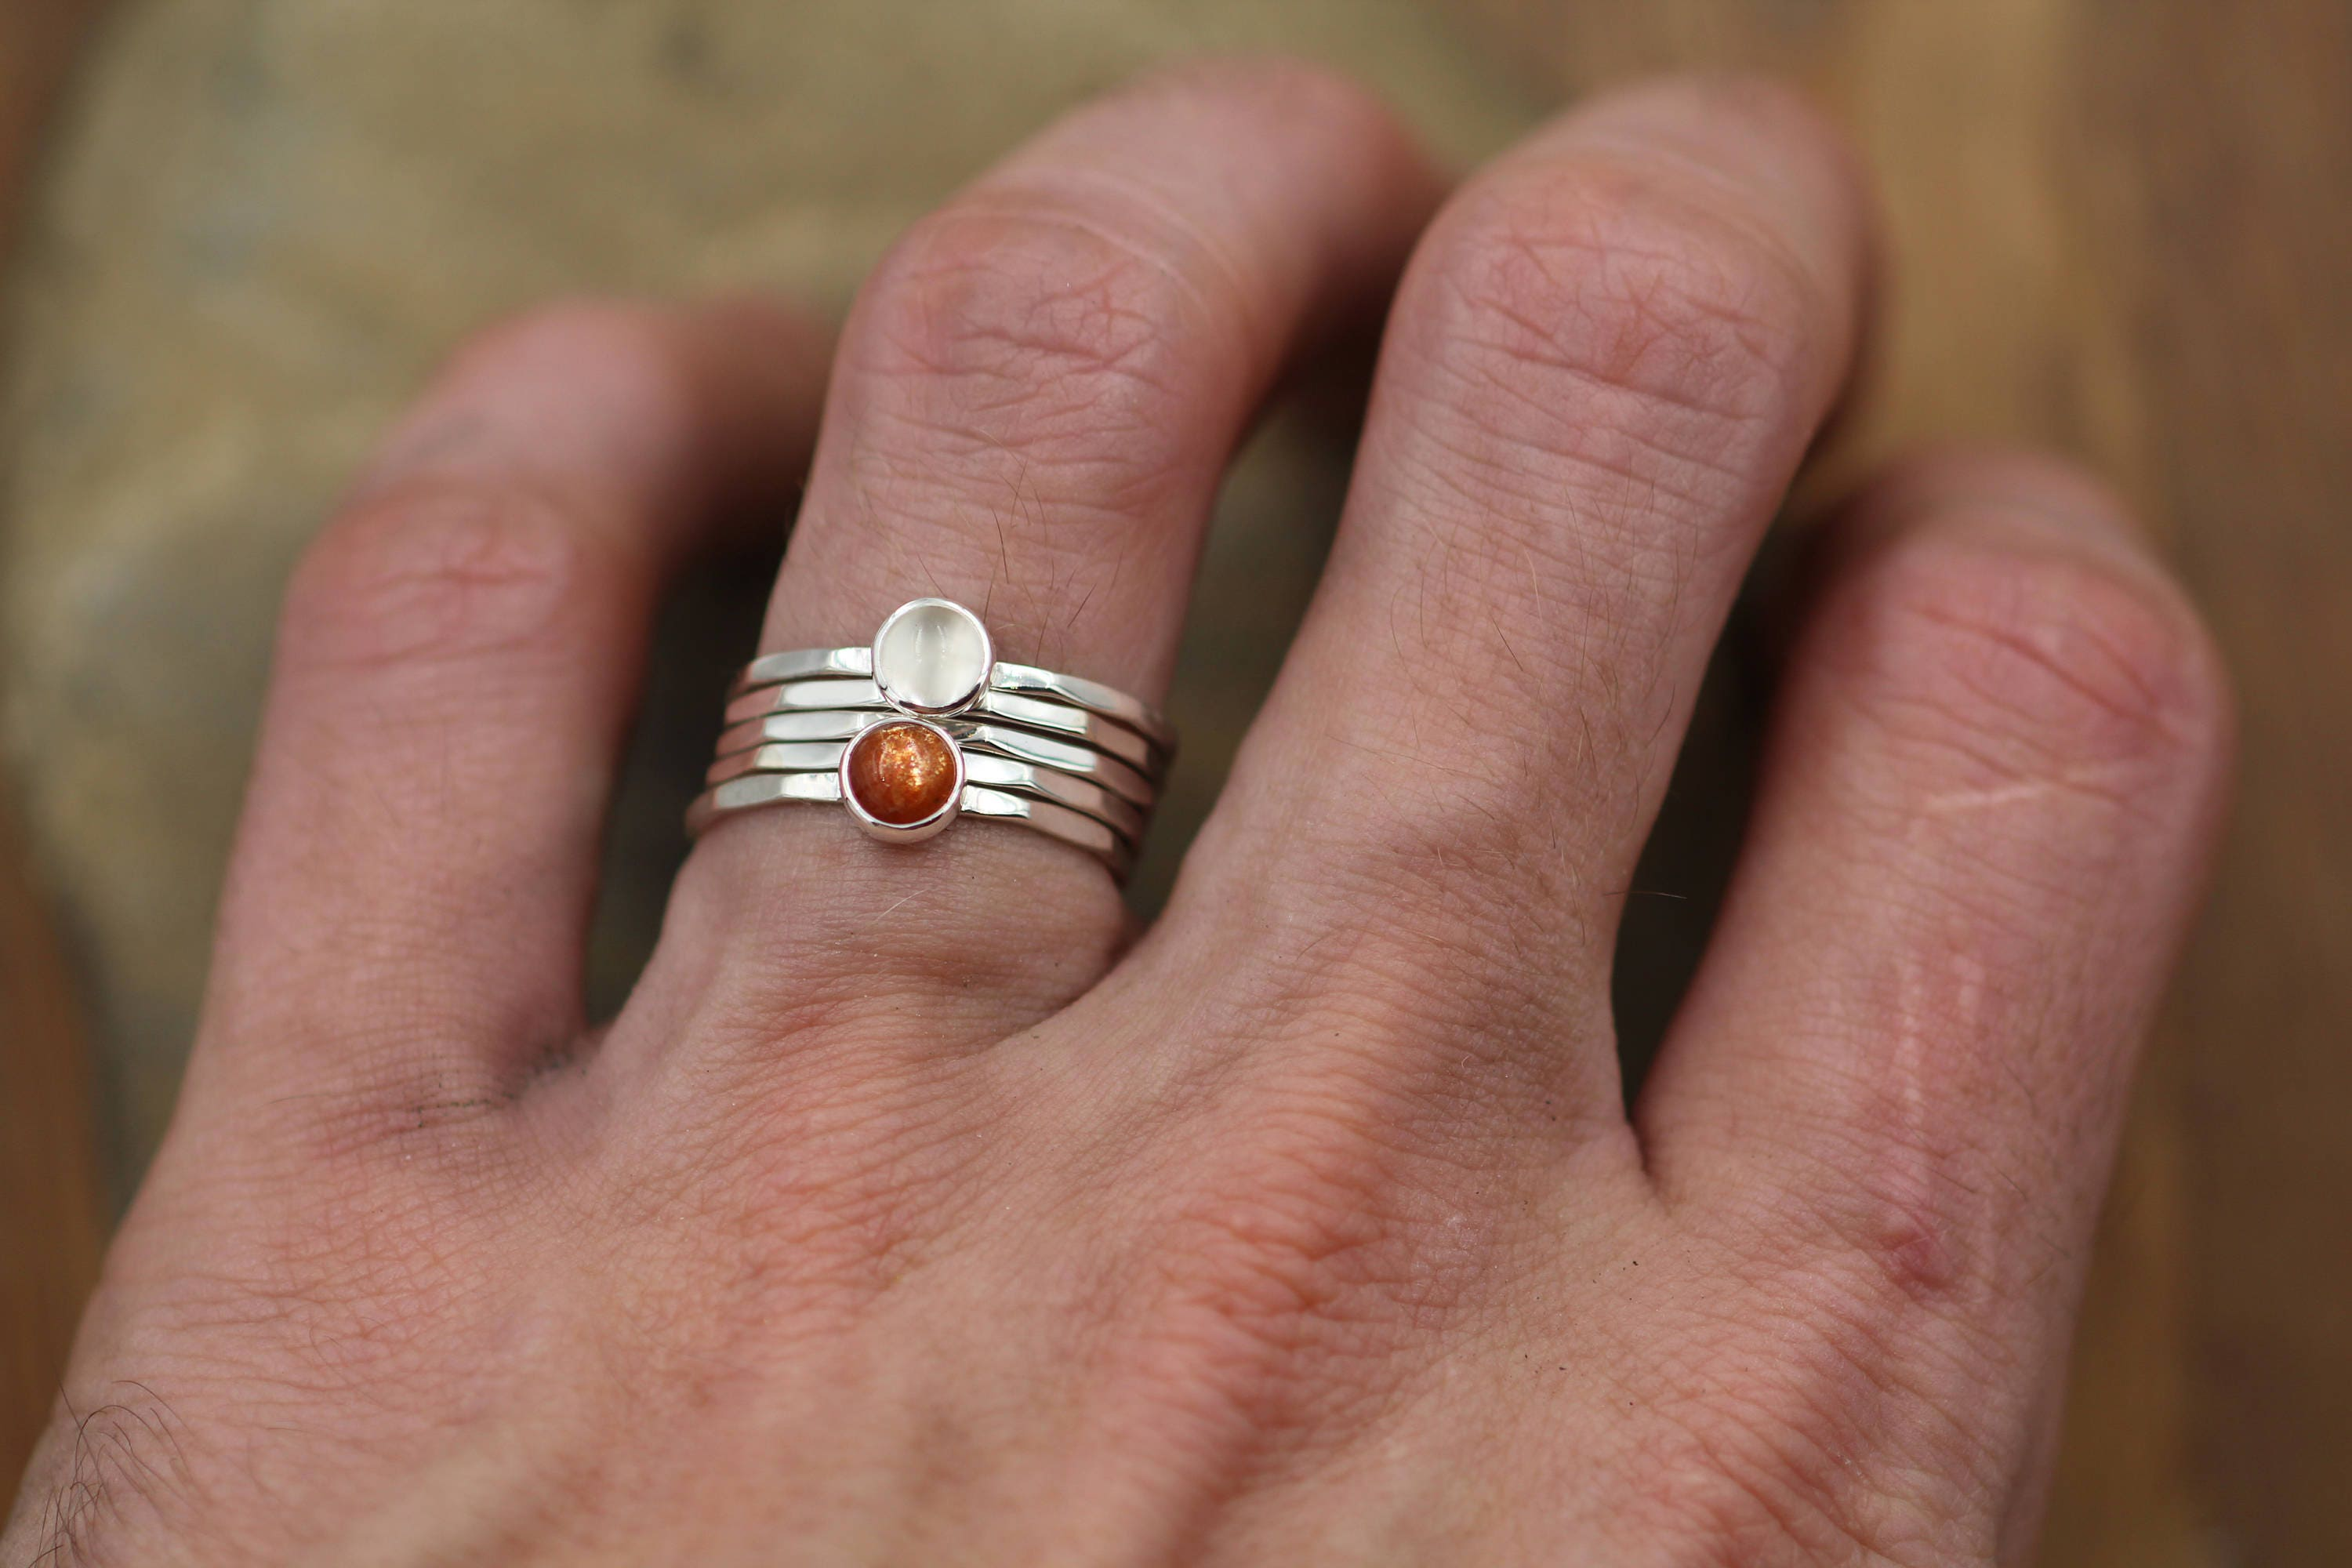 18a25ae35c0925 Sun and Moon Ring Set - Sunstone and Moonstone Ring Set - Skinny Stacking  Ring Set - Round Stacking Rings